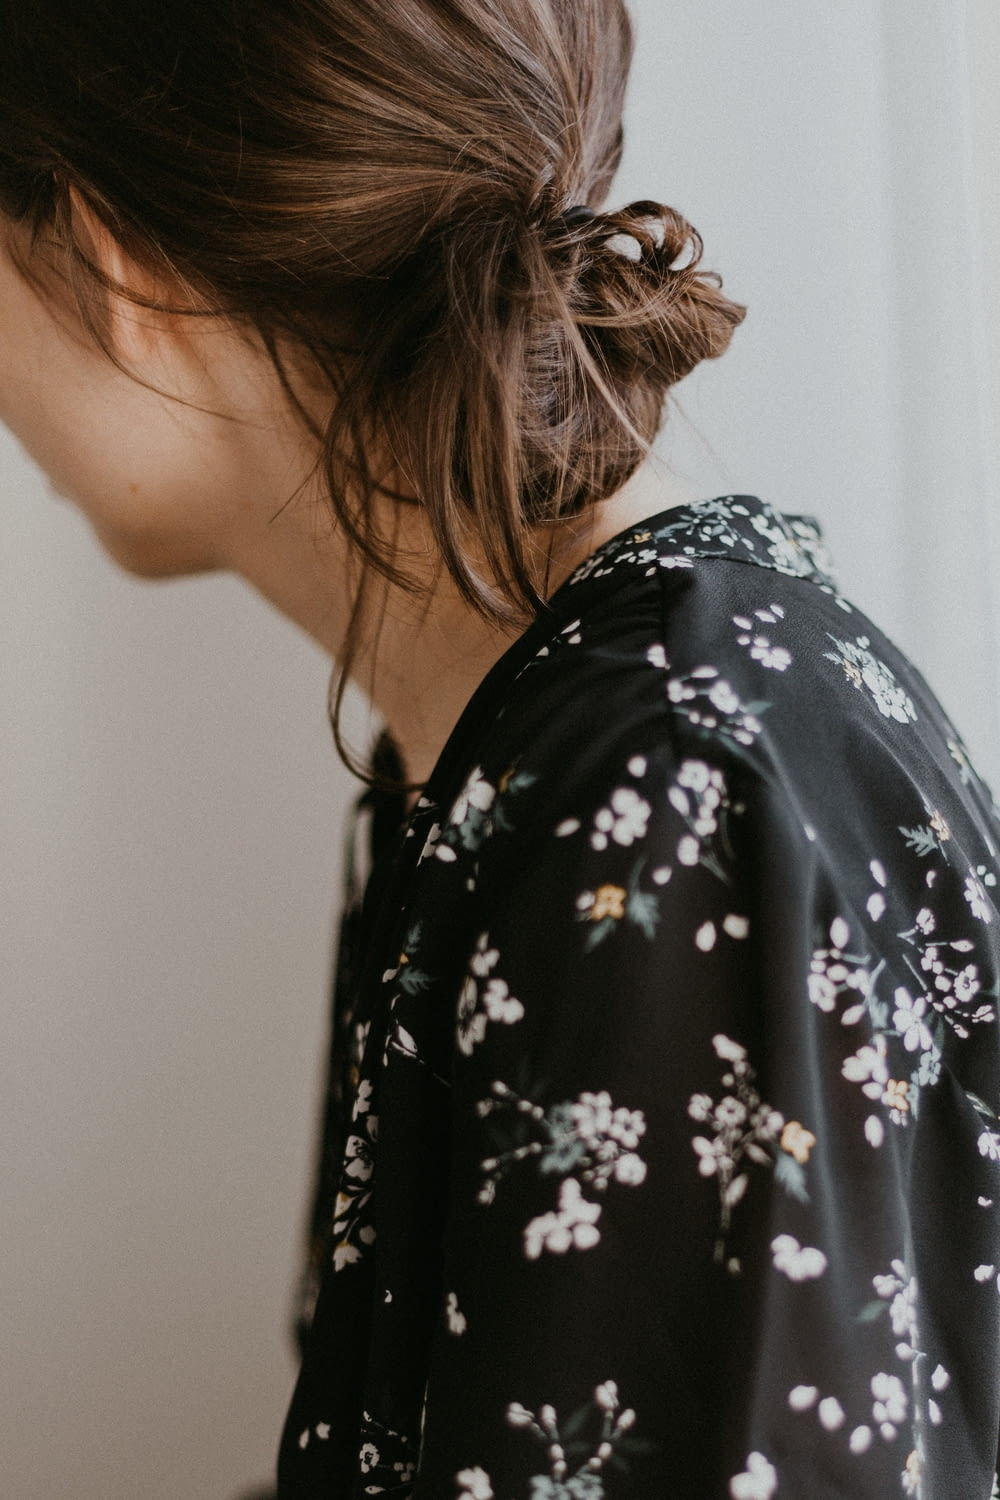 woman wearing black and white floral top